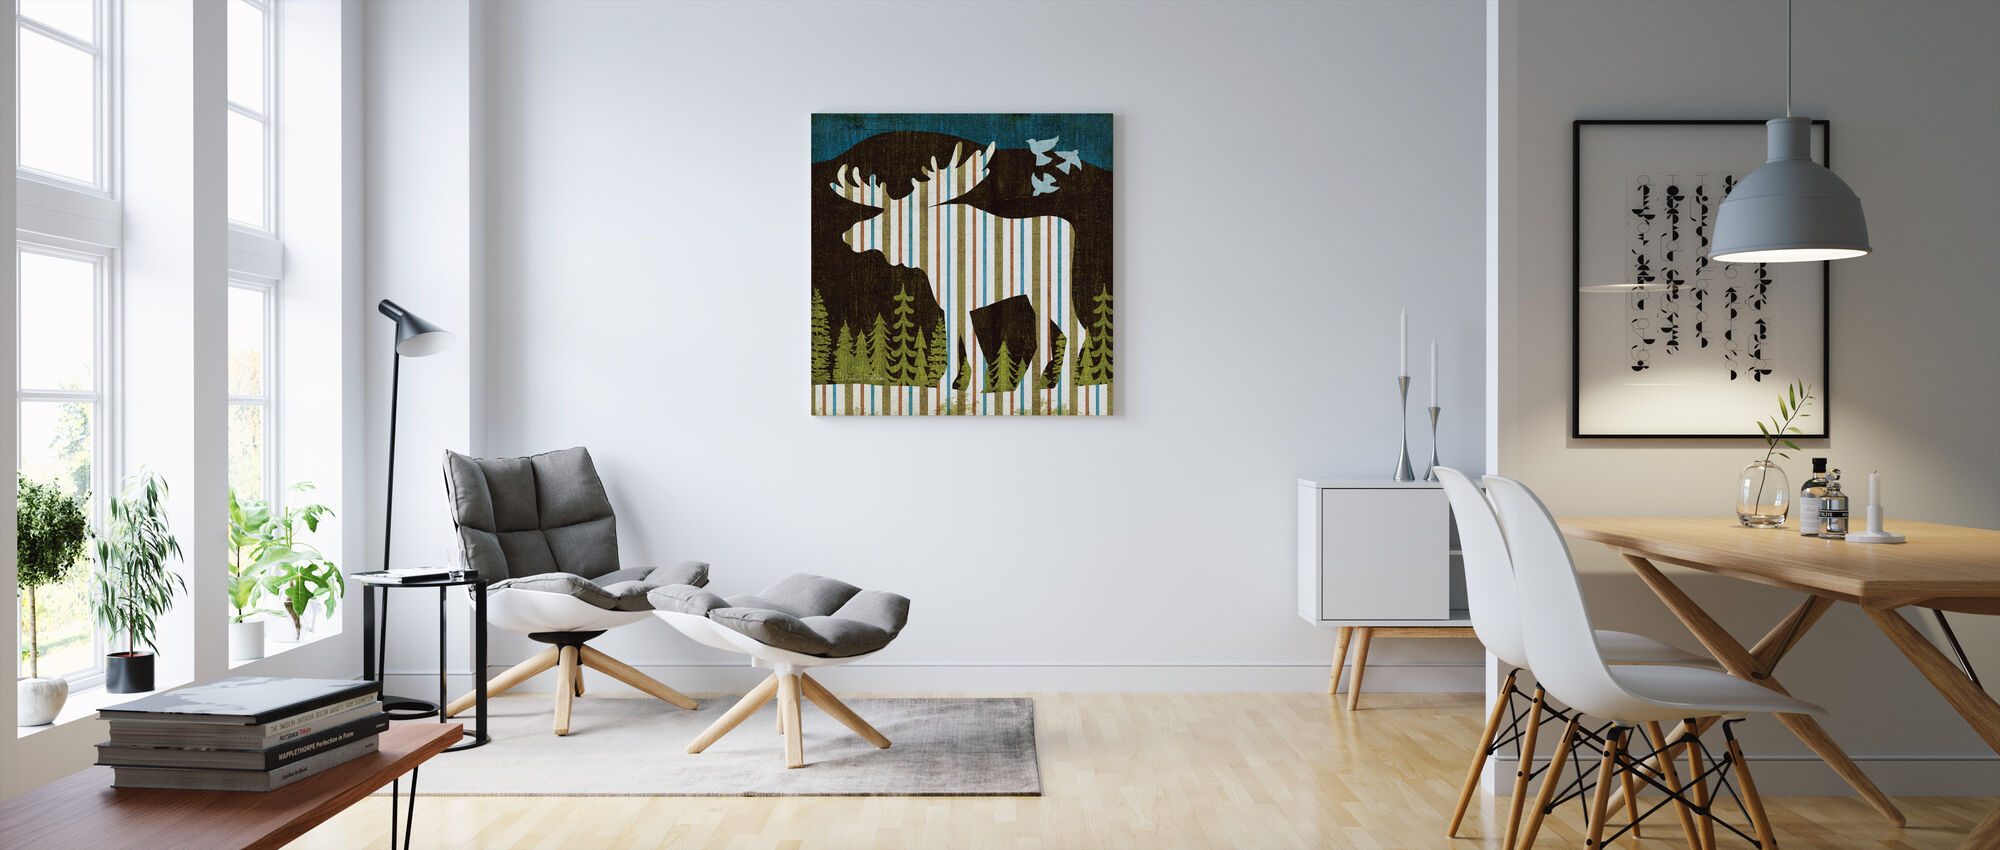 Nighttime Dwellers IV - Canvas print - Living Room